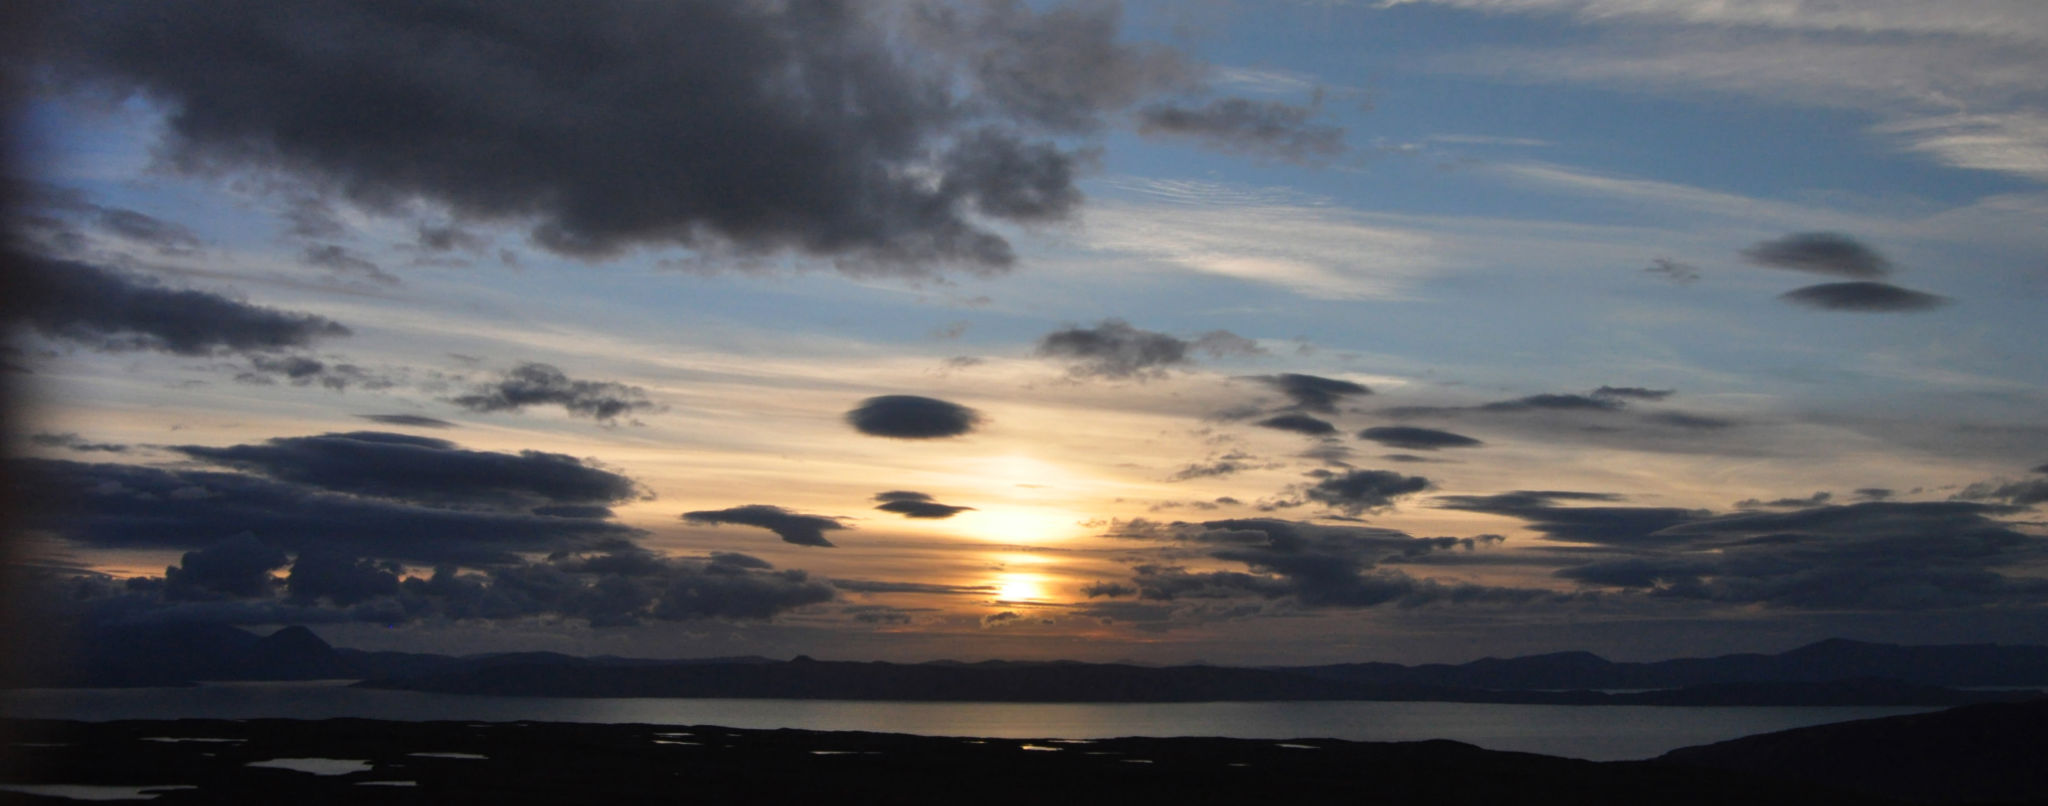 Sunset from the Bealach Na Ba looking over Raasay and the Isle of Skye